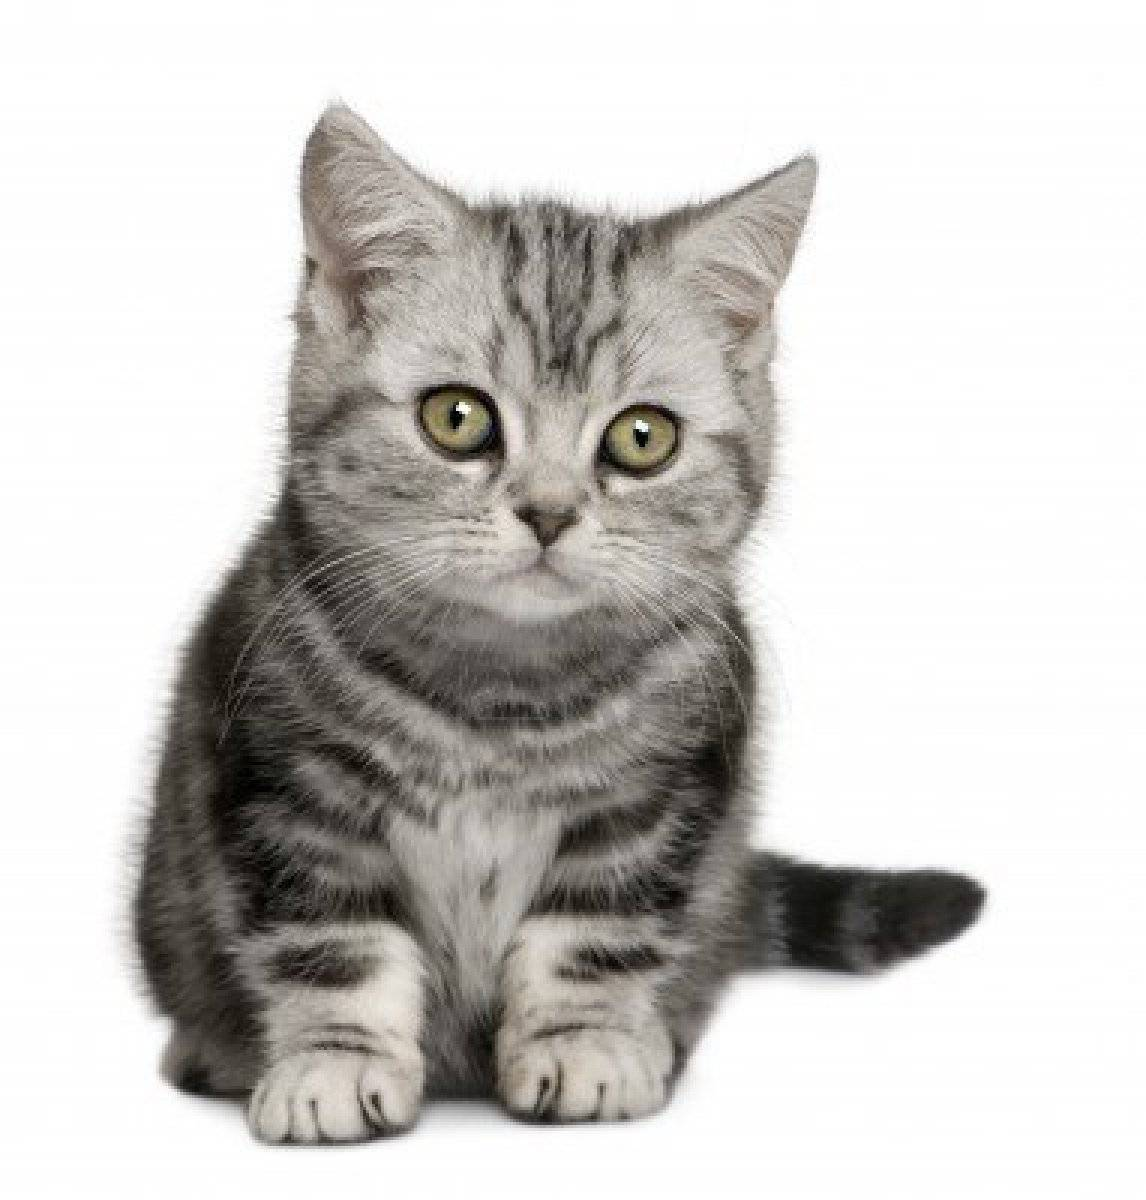 What To Name A Grey Tabby Cat